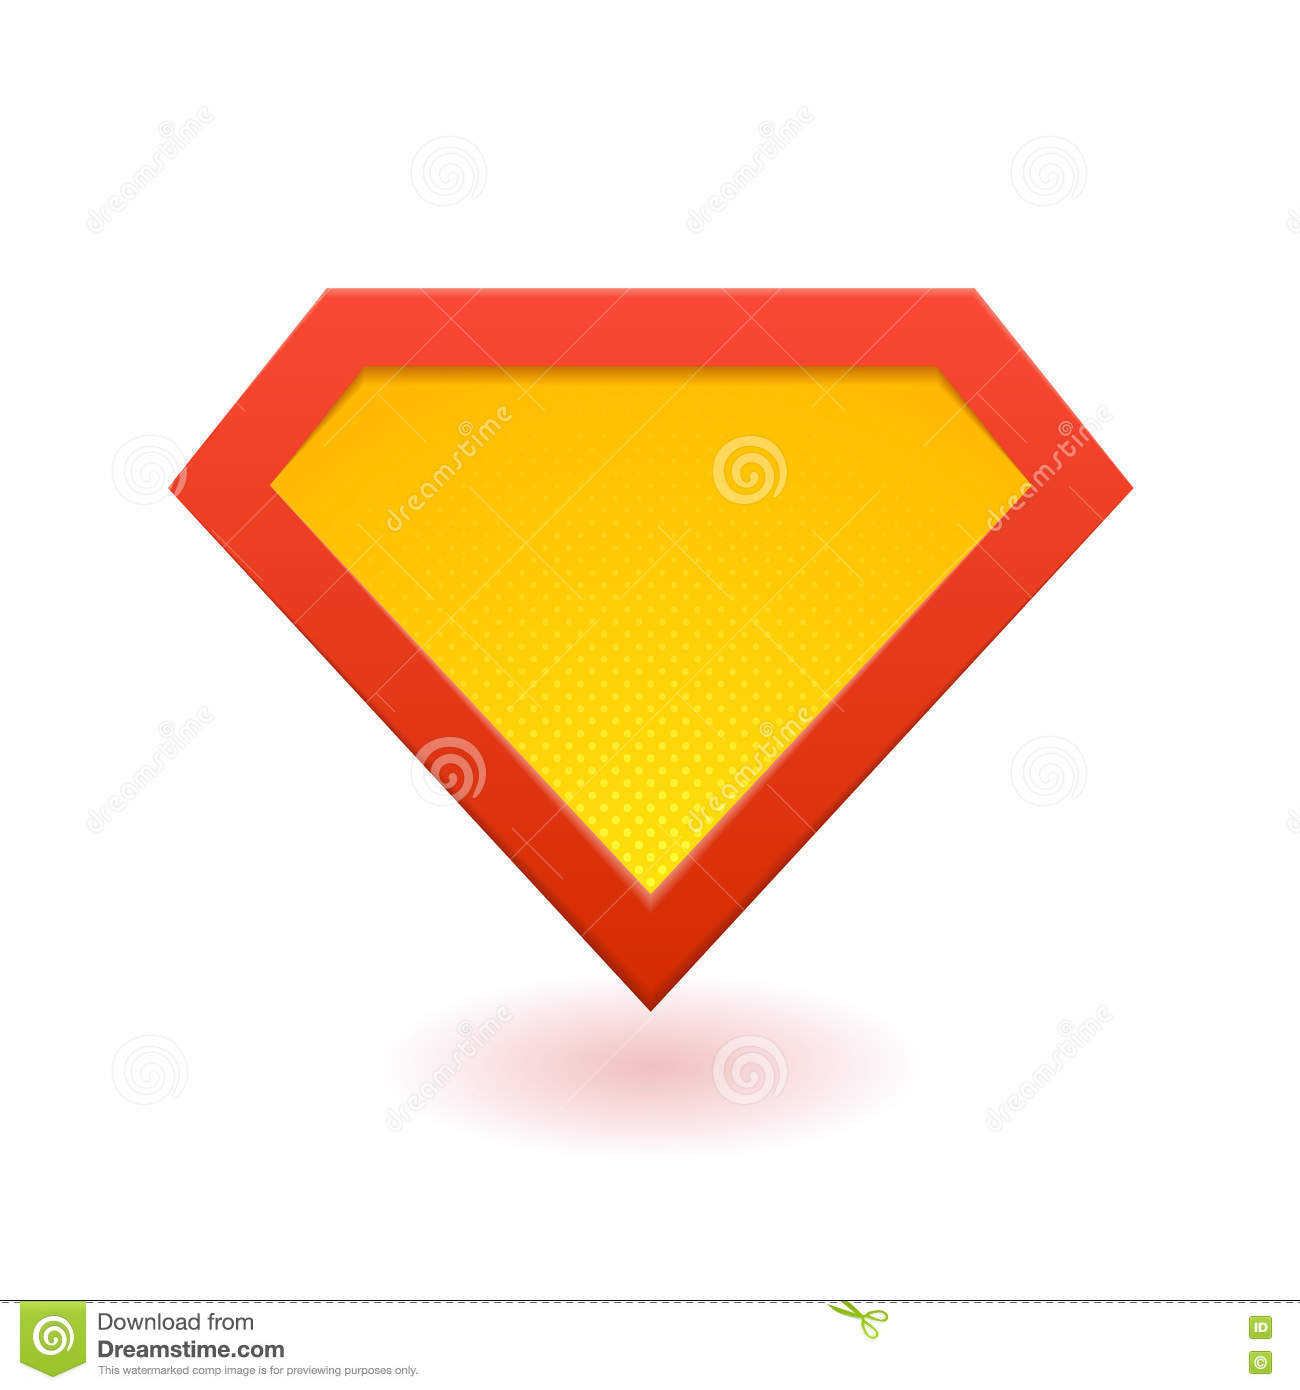 Super Hero Logo Stock Vector Illustration Of Orange 79379006